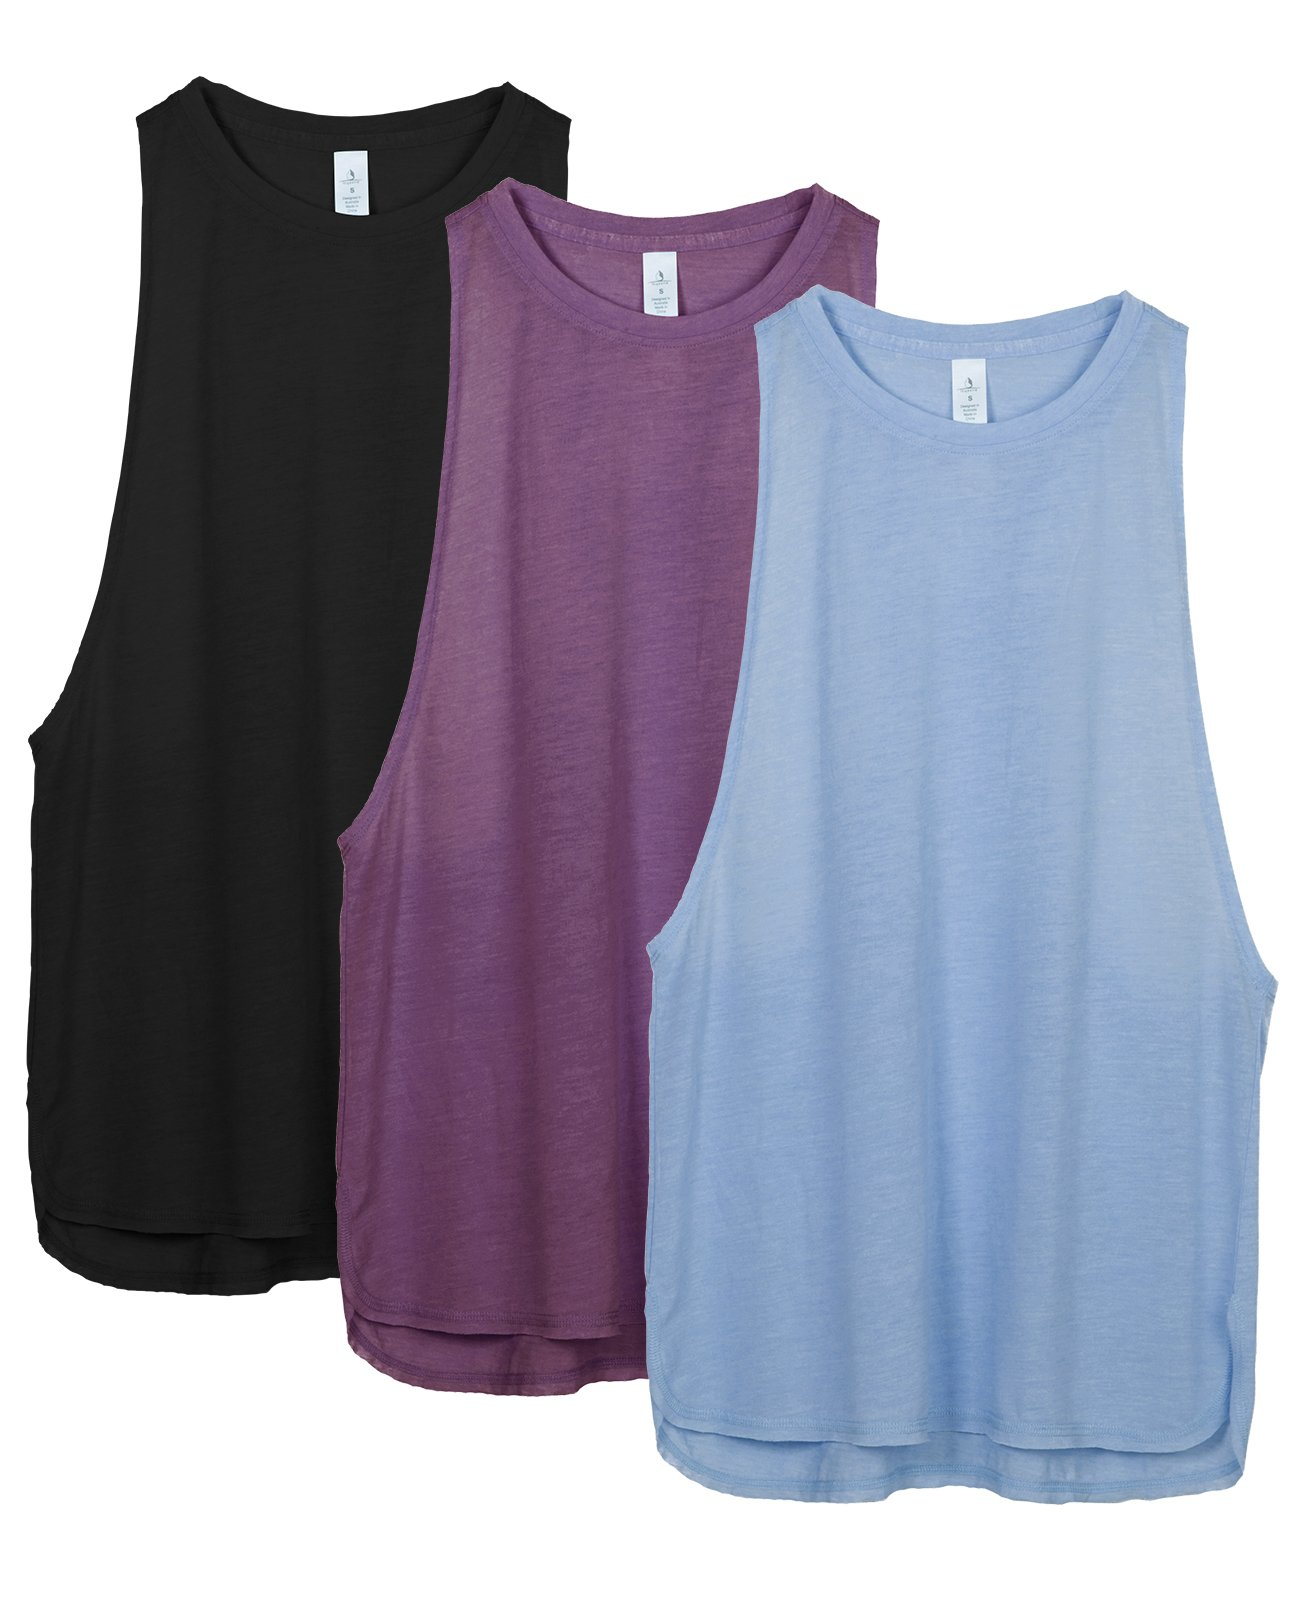 icyzone Workout Tank Tops for Women - Running Muscle Tank Sport Exercise Gym Yoga Tops Running Muscle Tanks(Pack of 3) (XS, Black/Grape/Sky Blue)